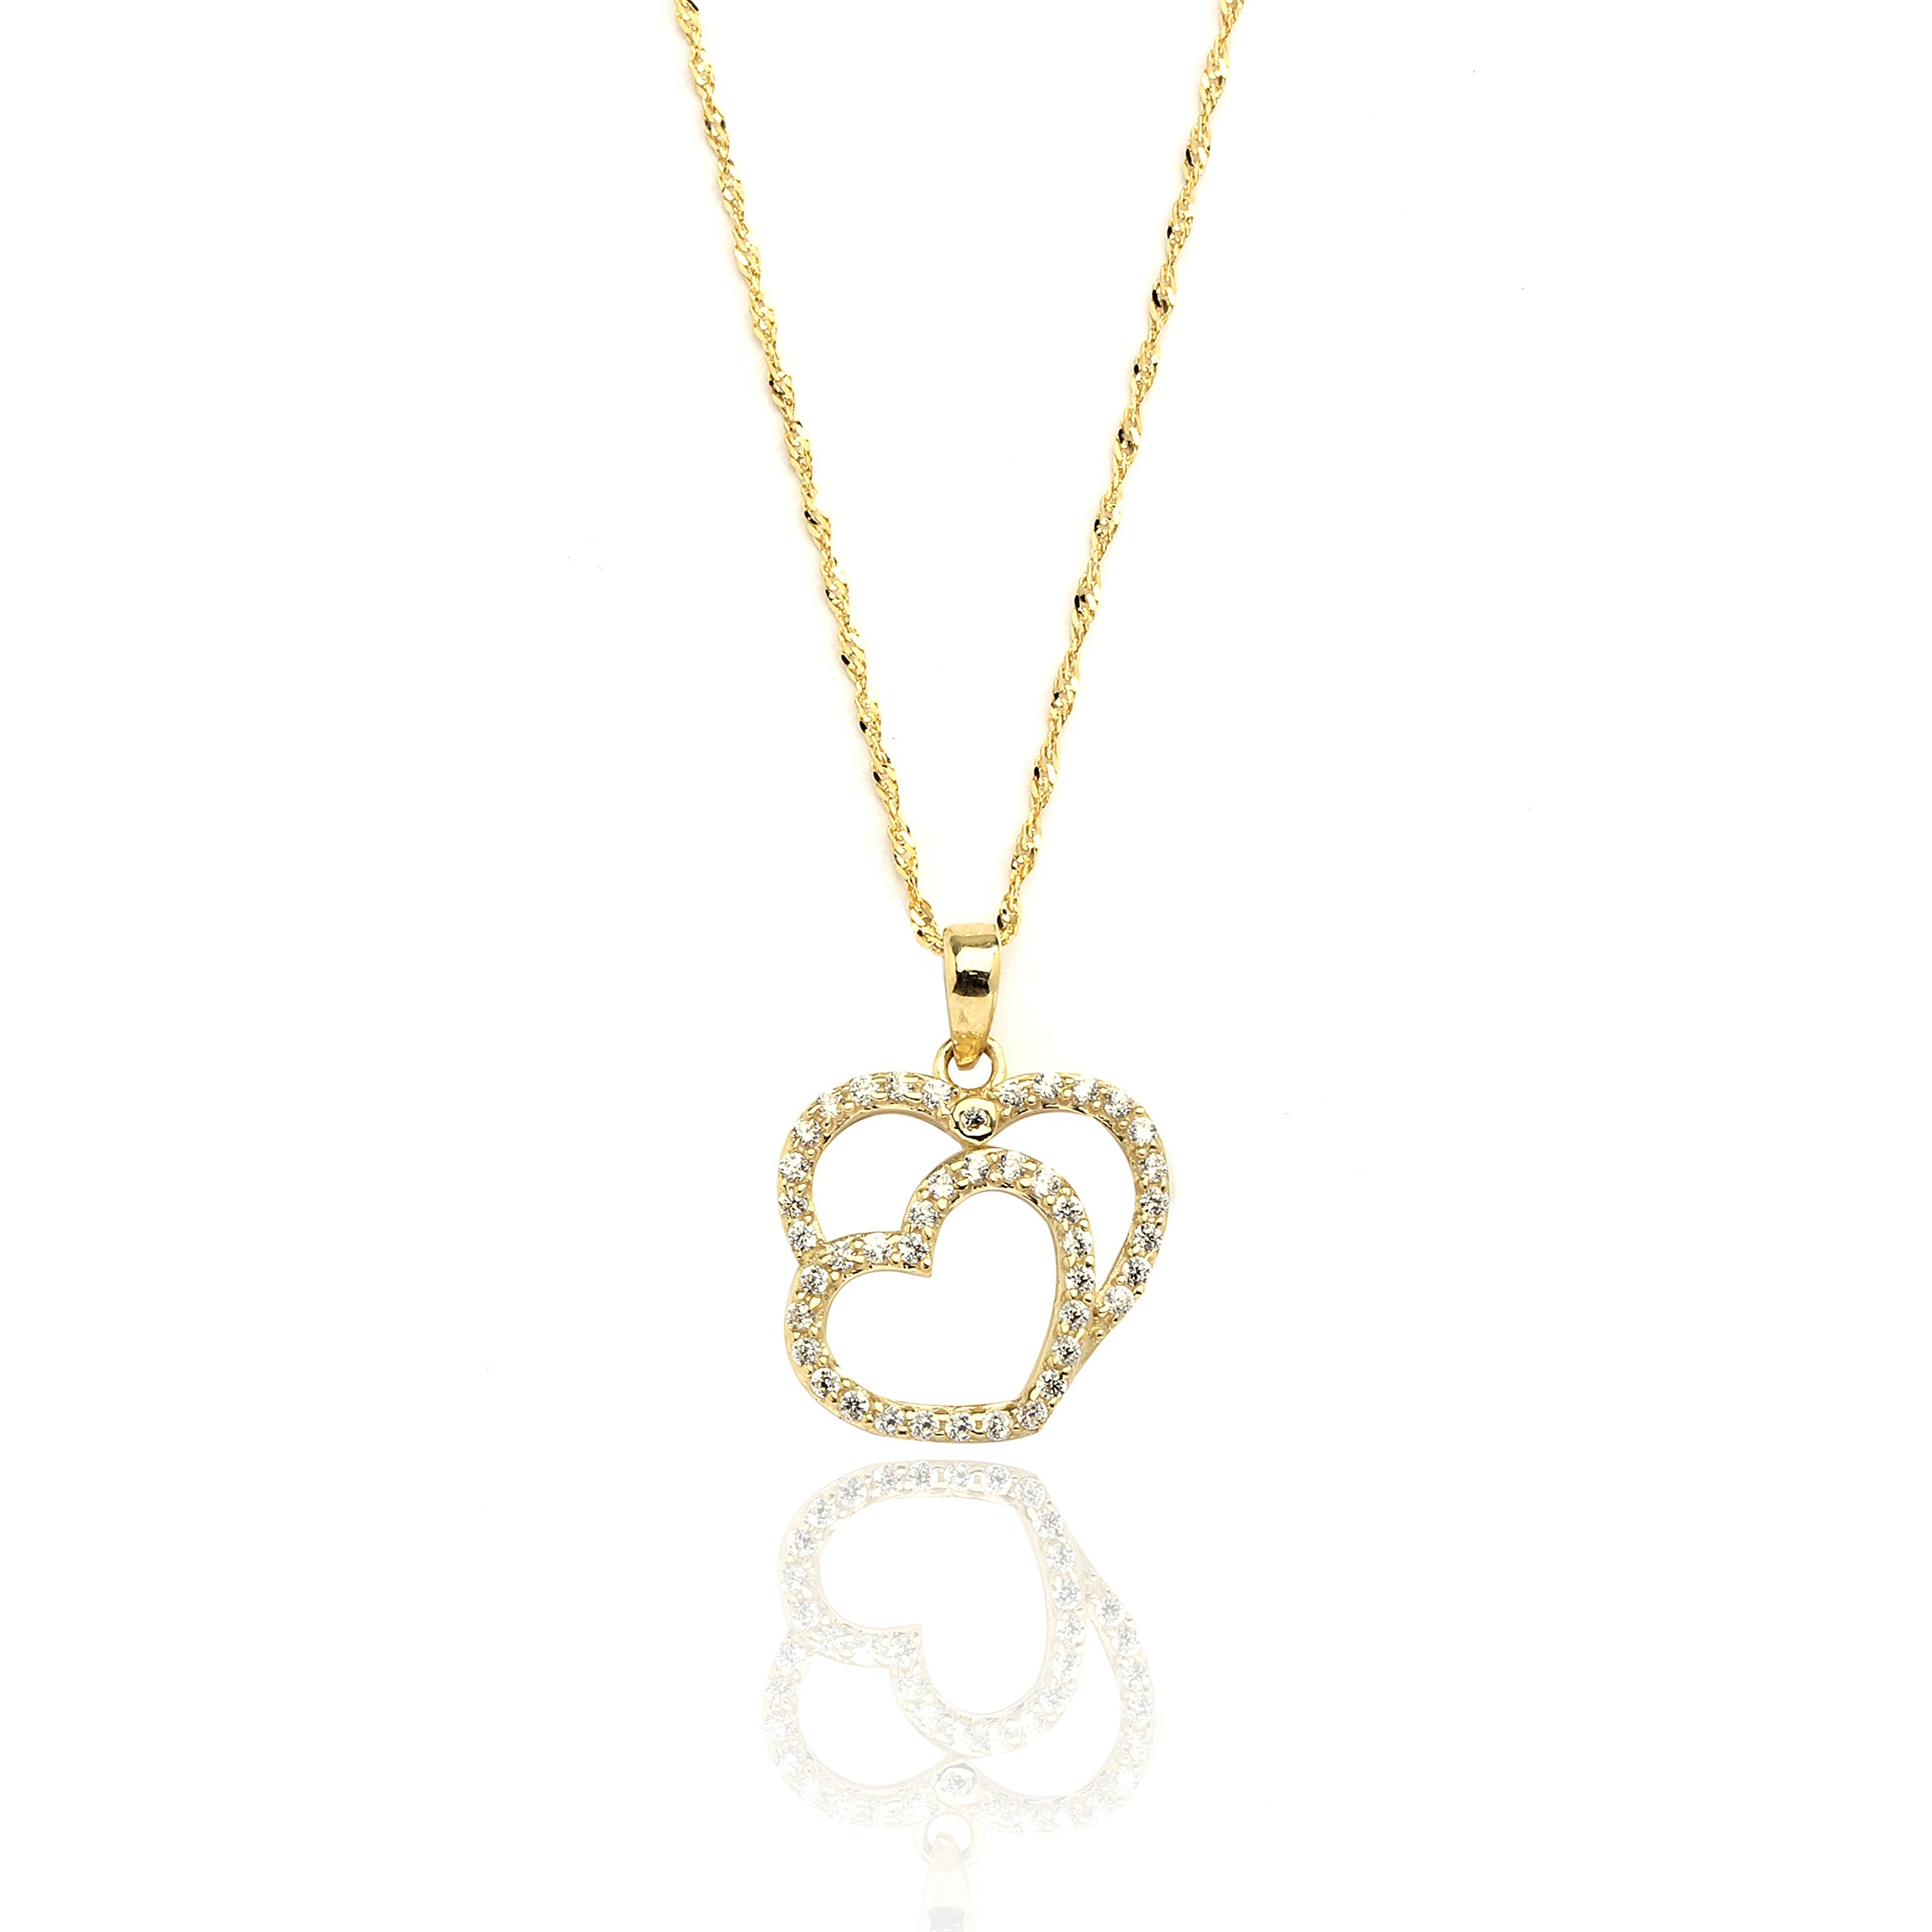 18'' 10k Yellow Gold Two Hearts CZ Pendant Necklace with Singapore Chain for Women and Girls